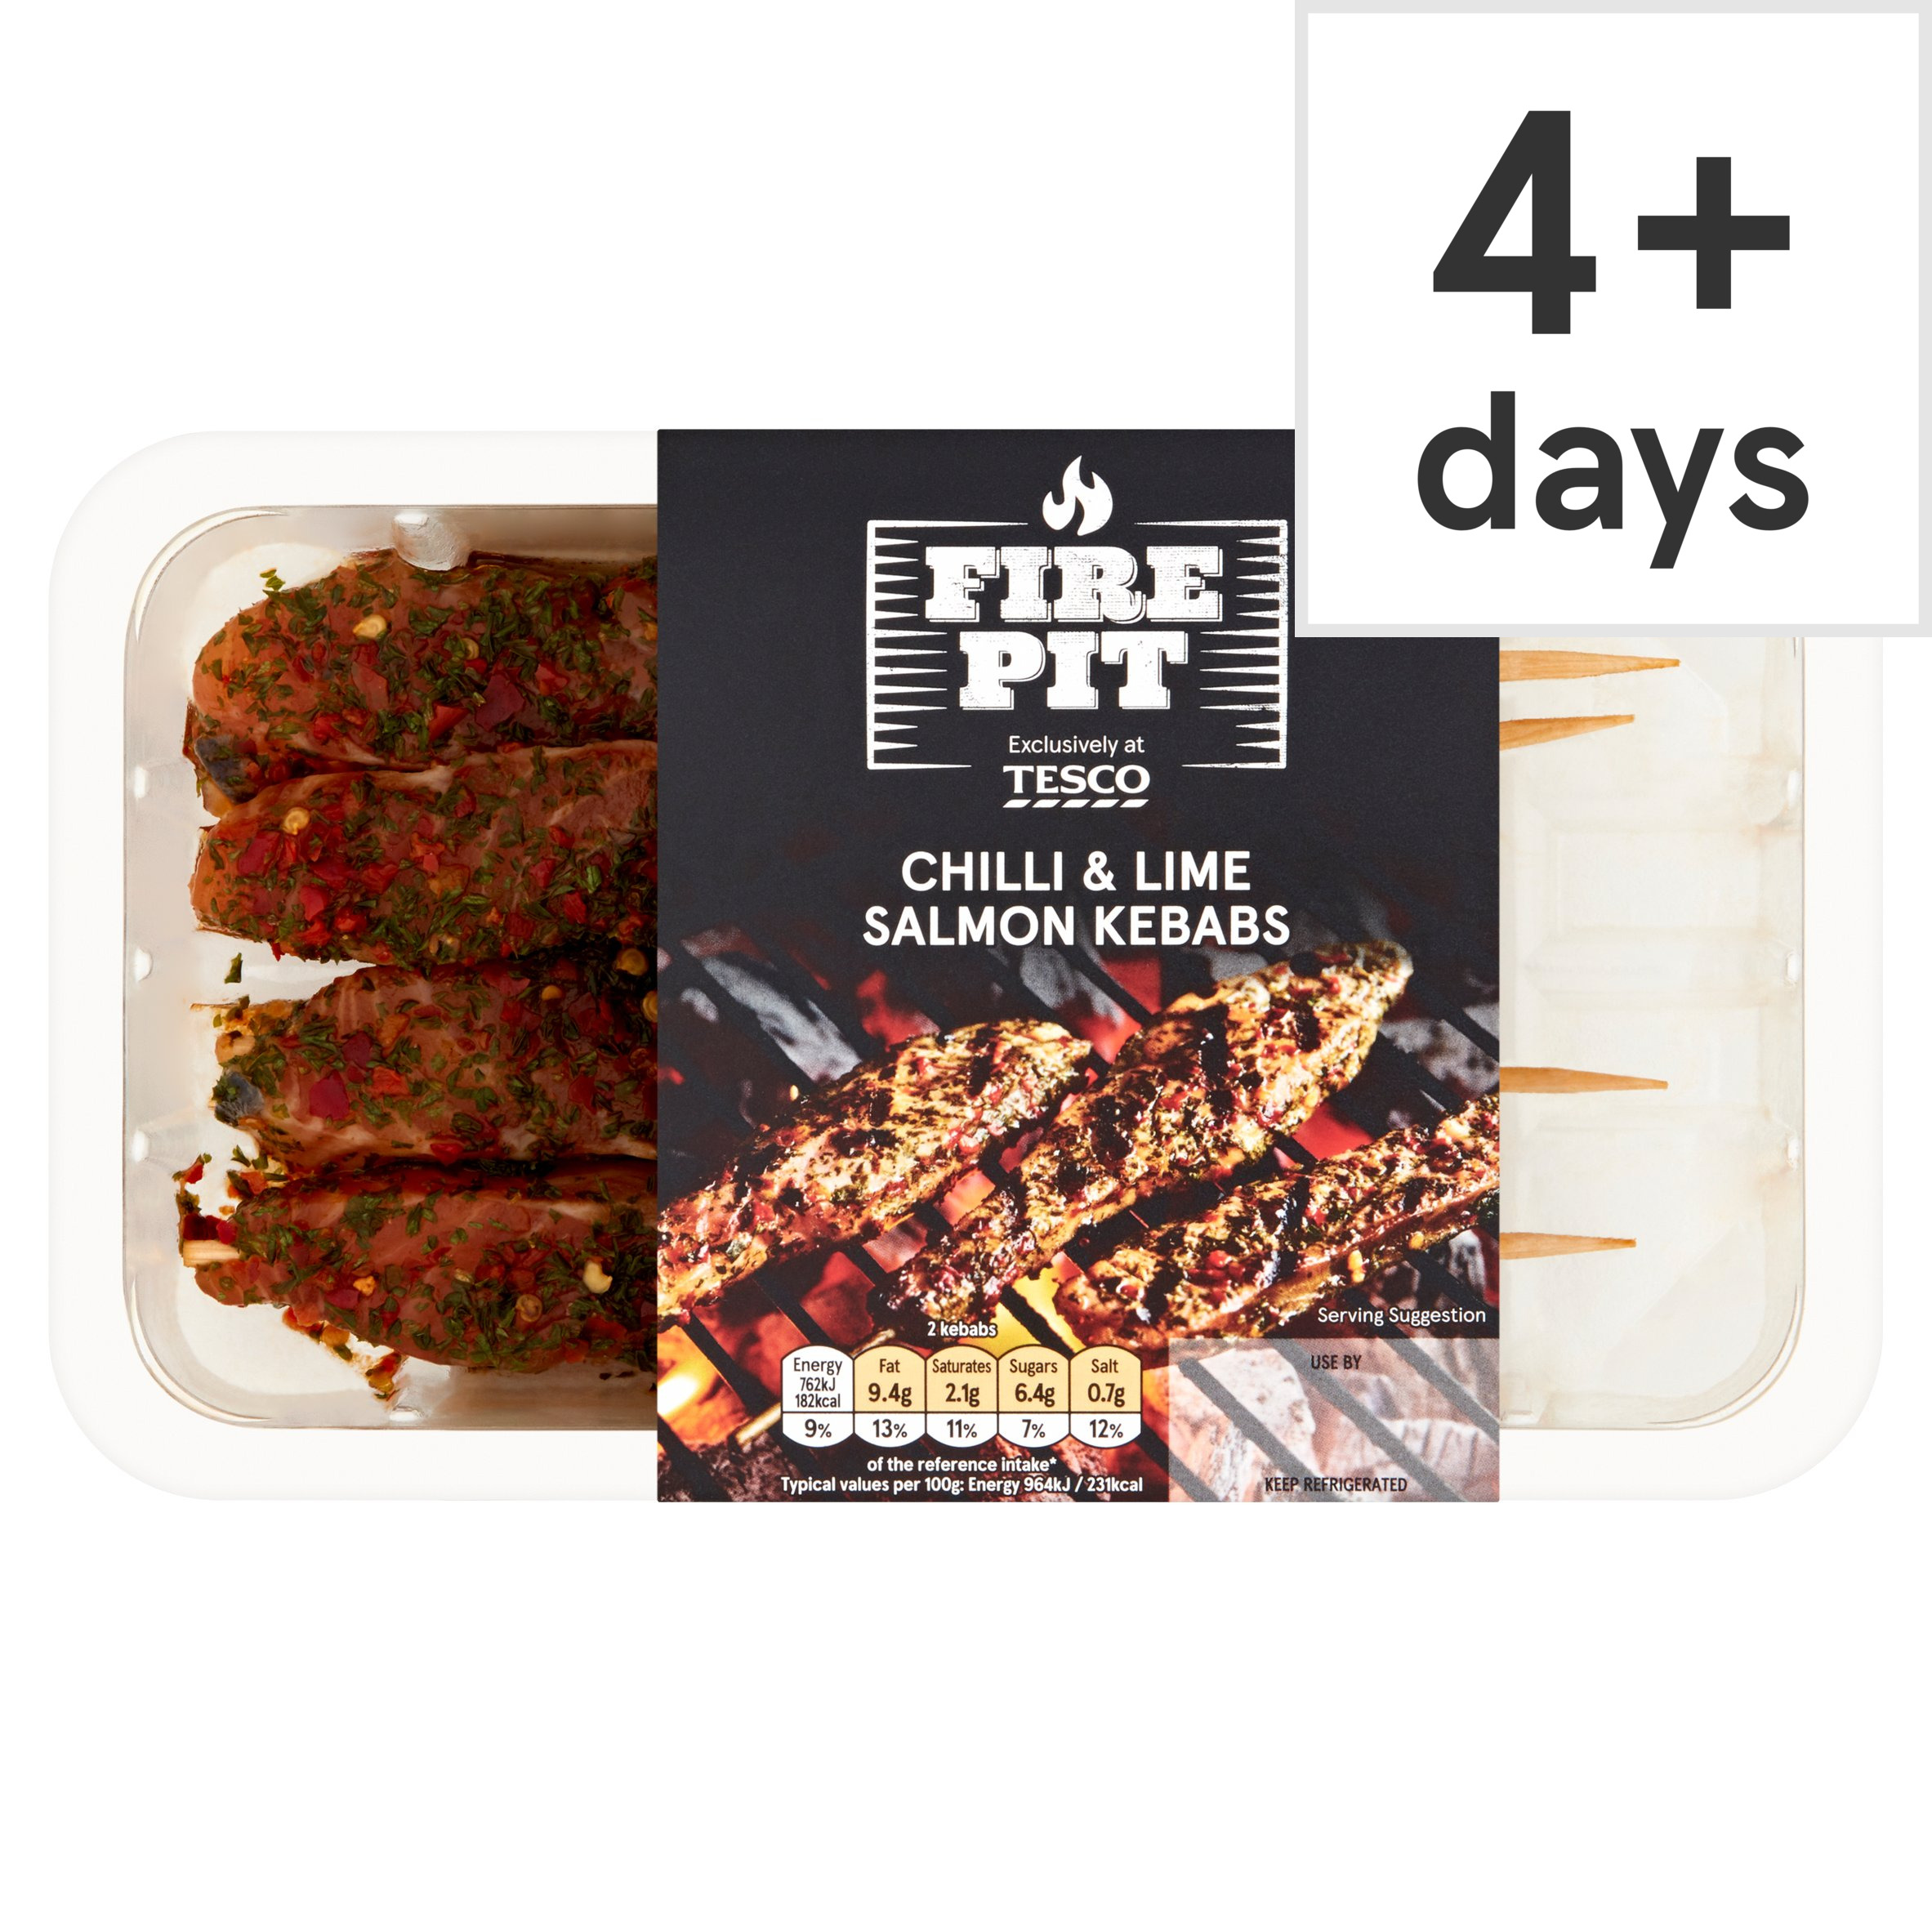 T Firepit Chilli & Lime Salmon Kebabs 177G